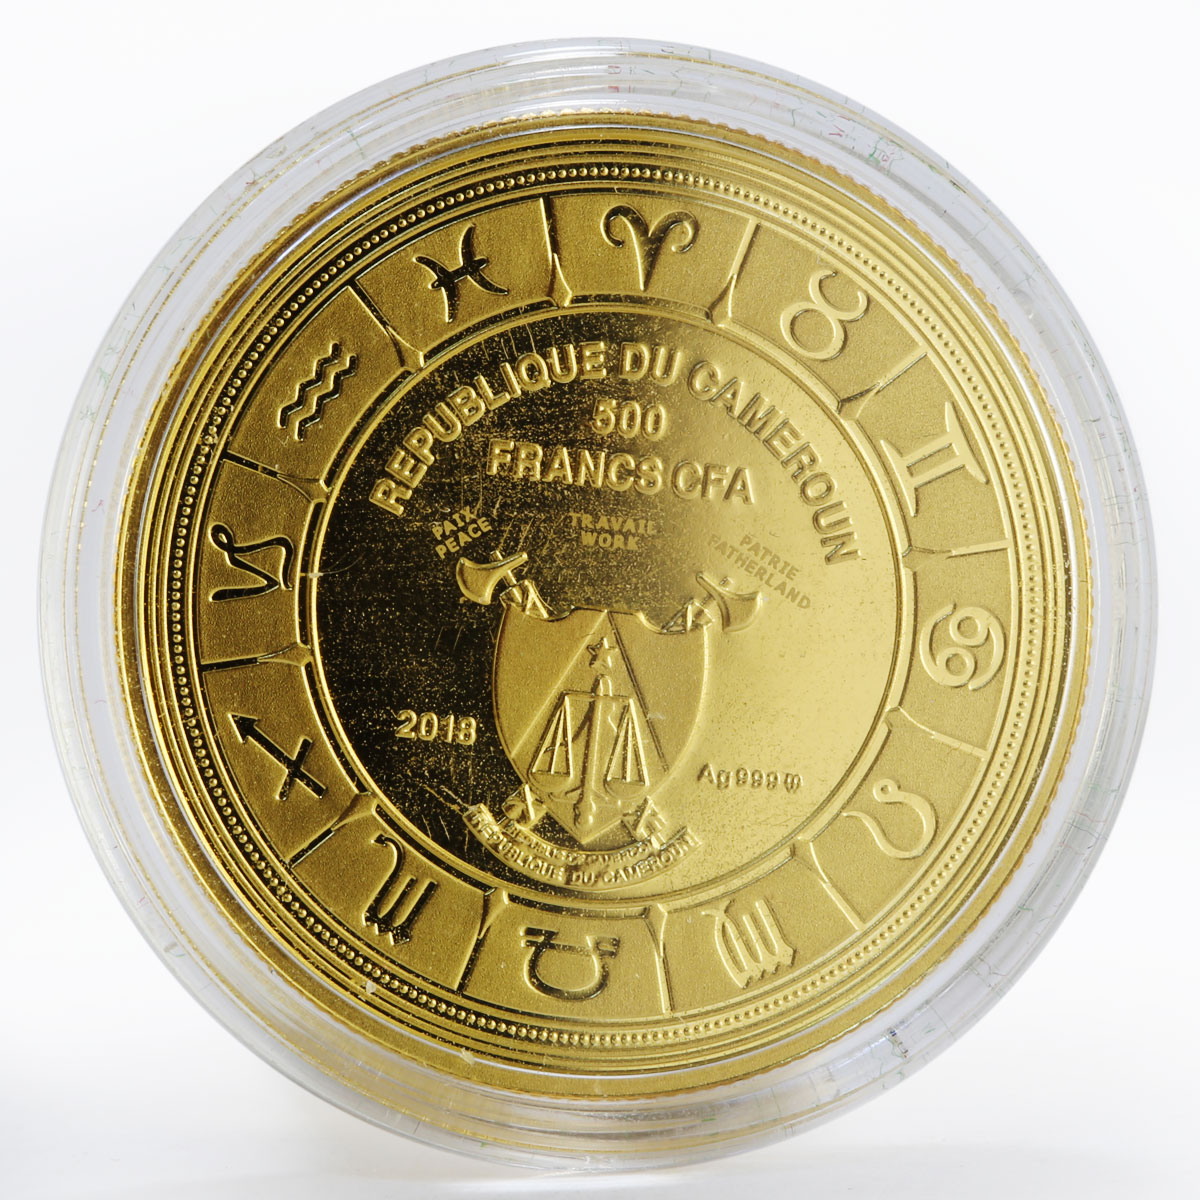 Cameroon 500 francs Zodiac Signs Leo colored gilded proof silver coin 2018